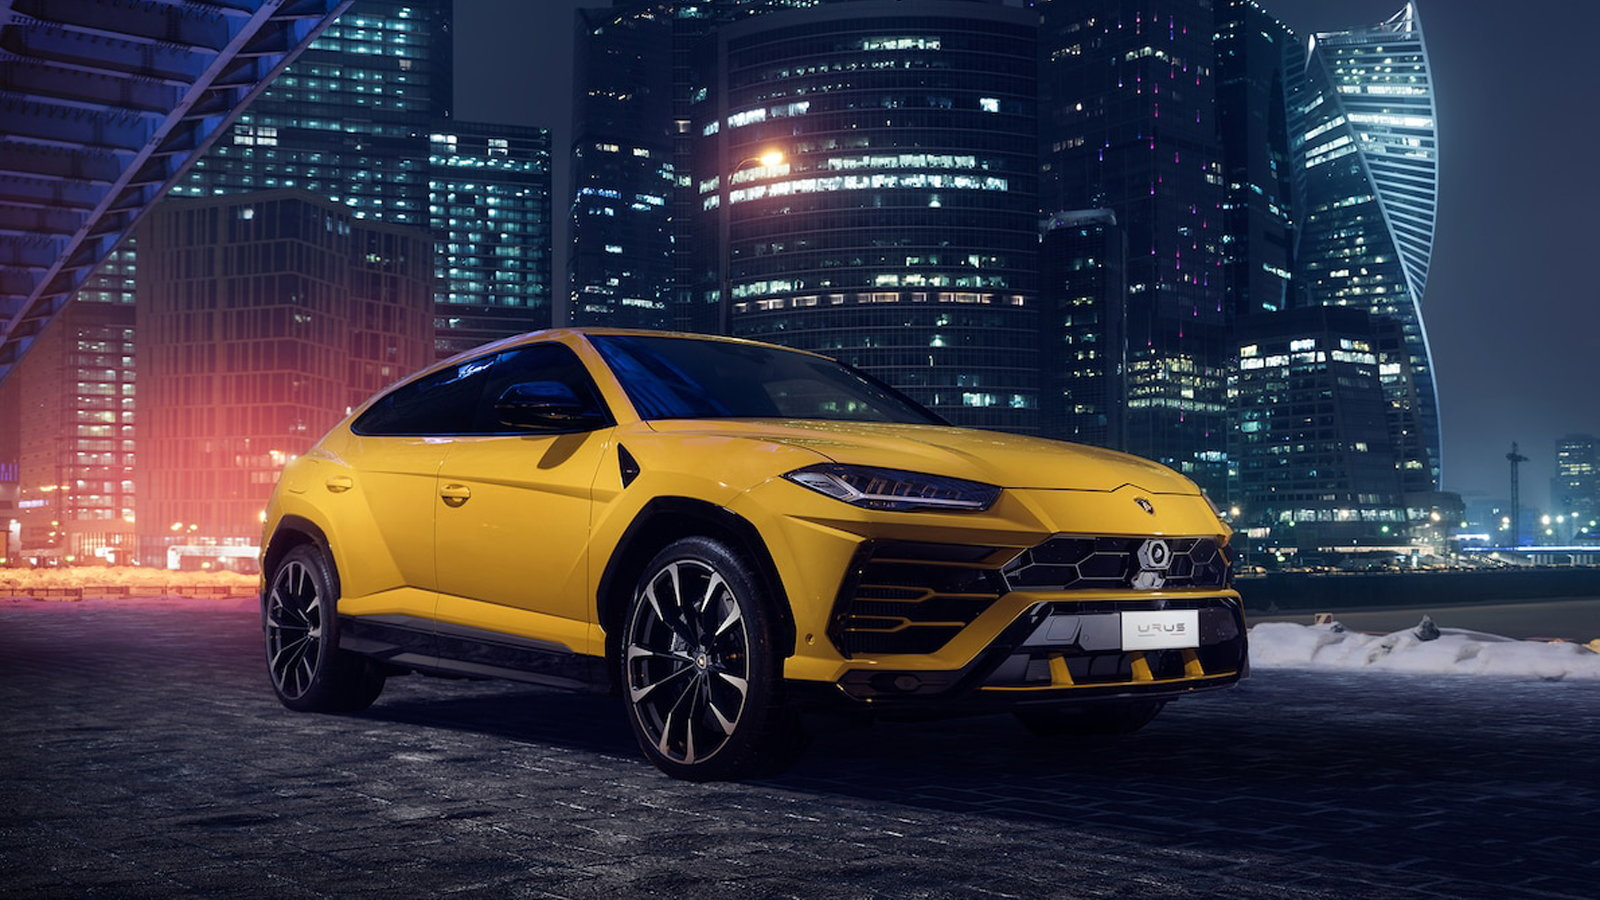 2019 Urus Truck Takes First Drive